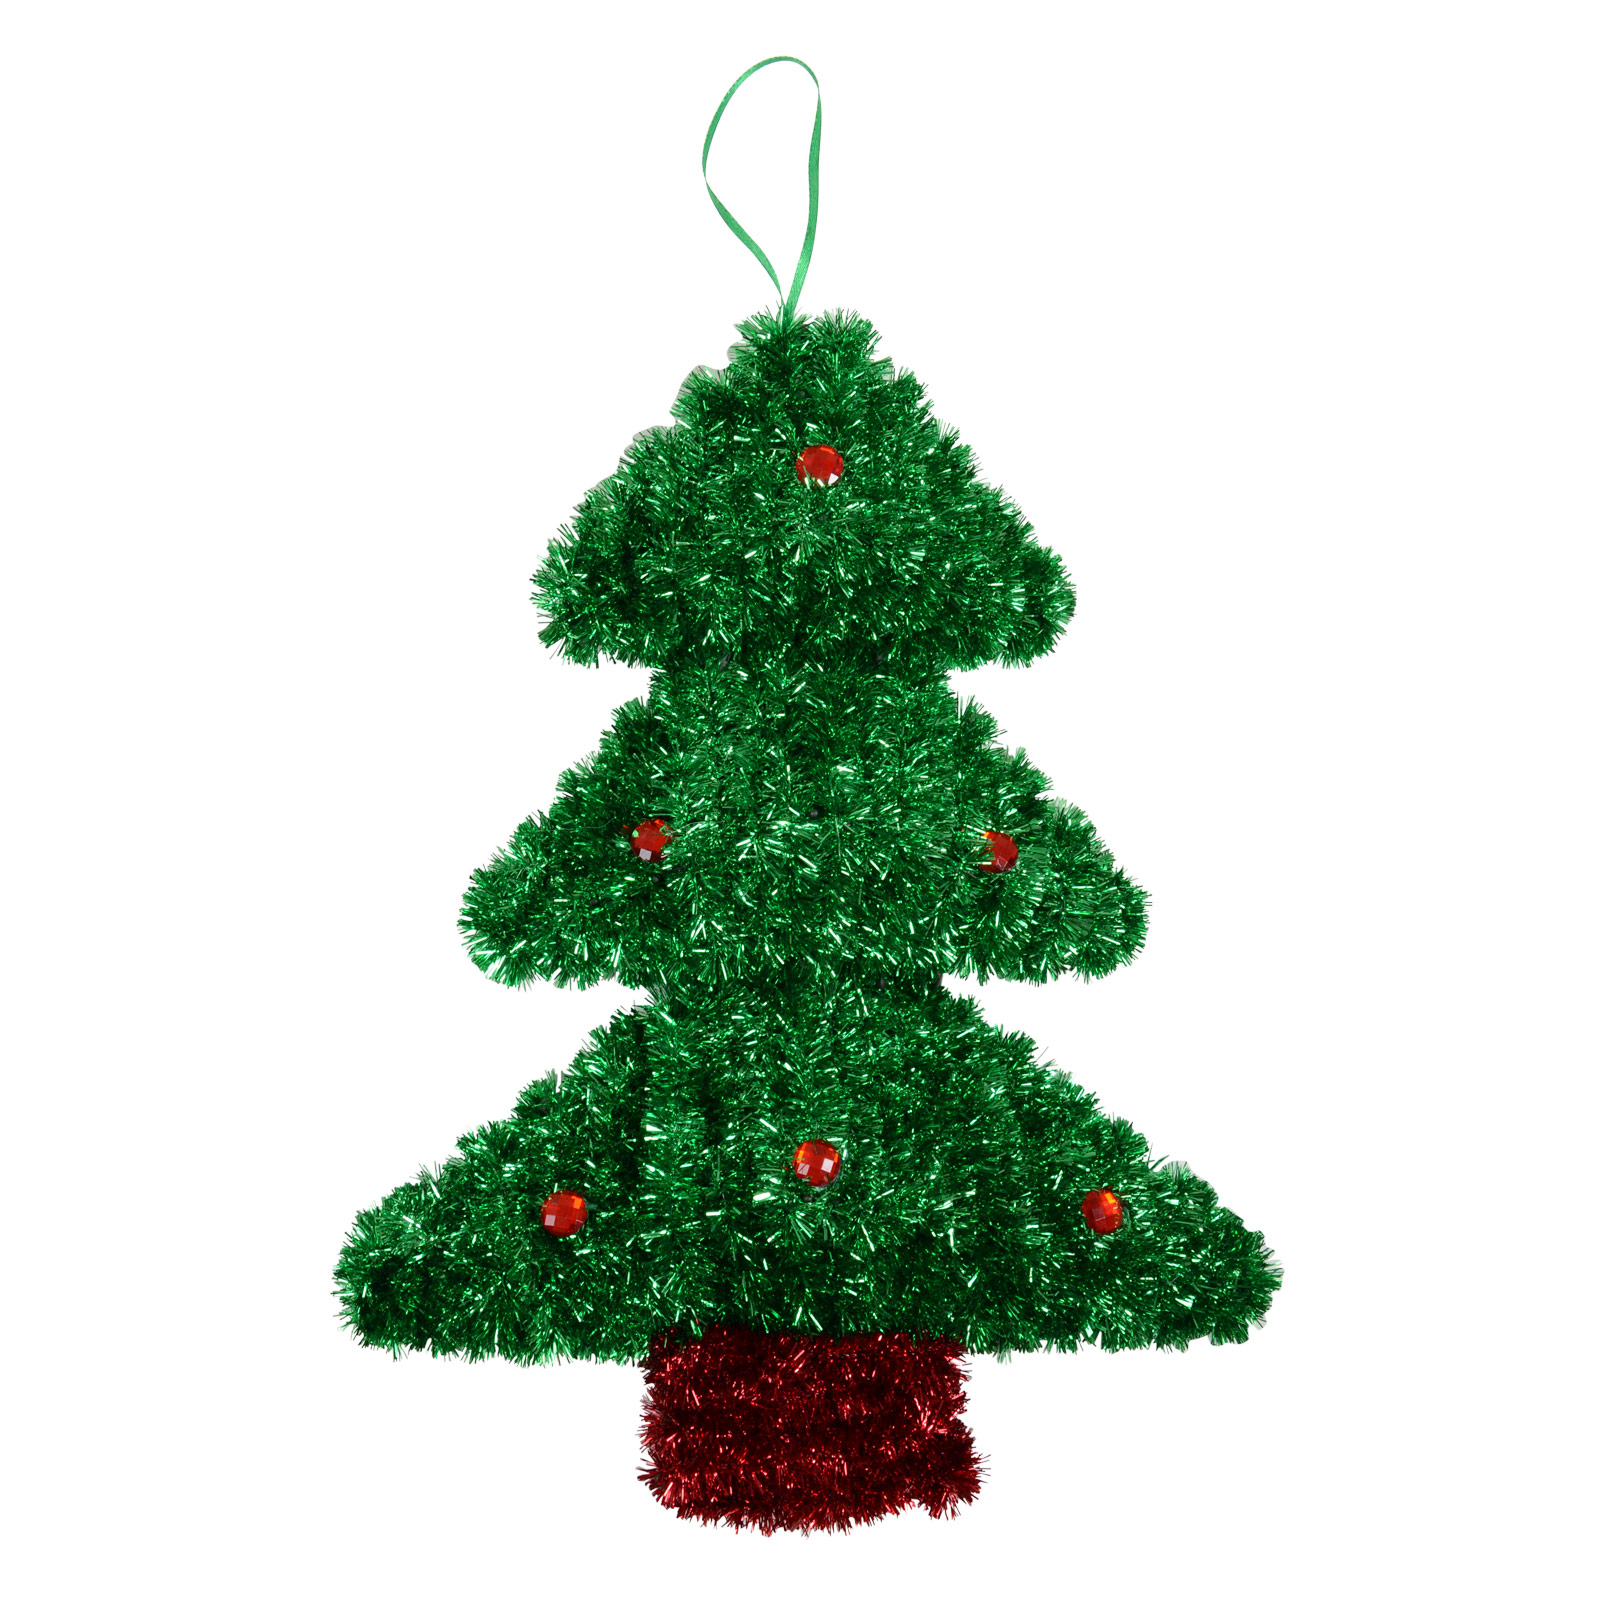 tinsel decorating christmas tree 3d model tinsel and garland decorating ideas christmas tinsel tree decorations pics large tinsel christmas tree xmas